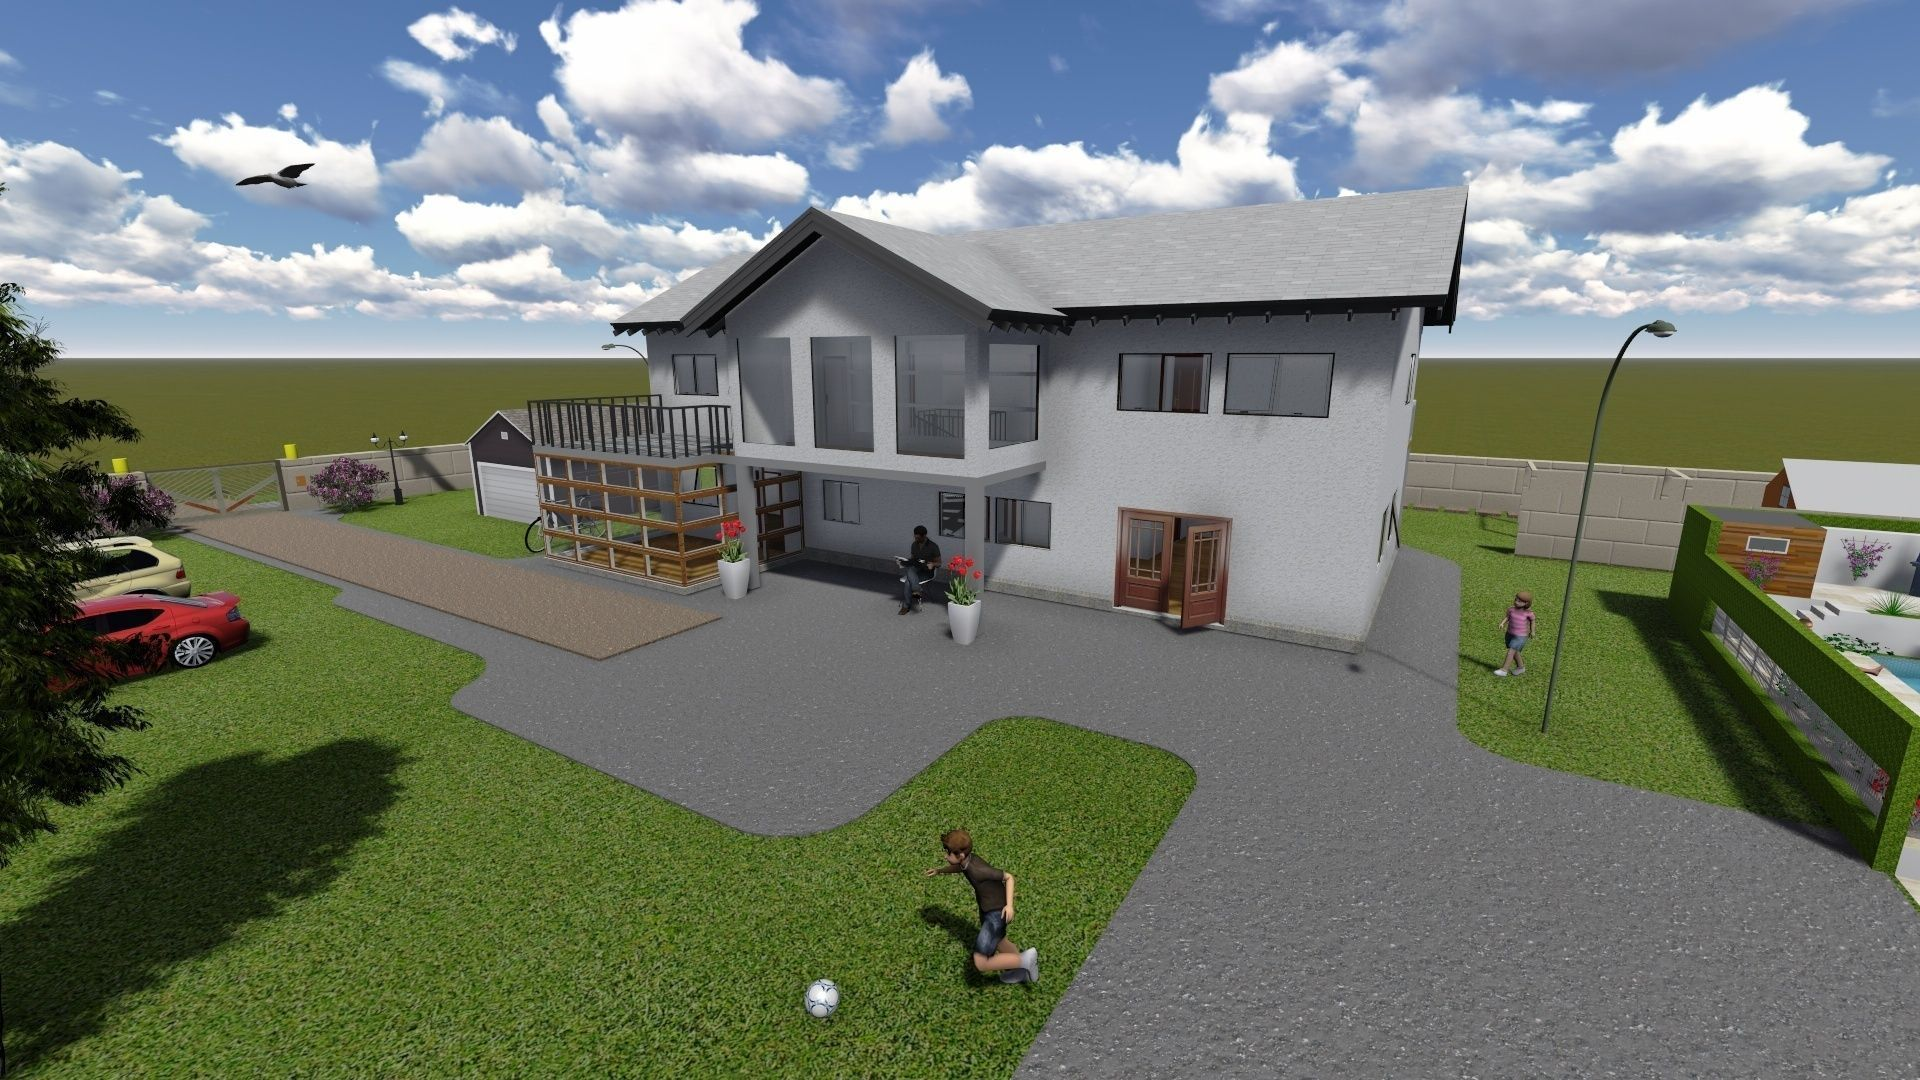 Simple house free 3d model skp for Simple home model